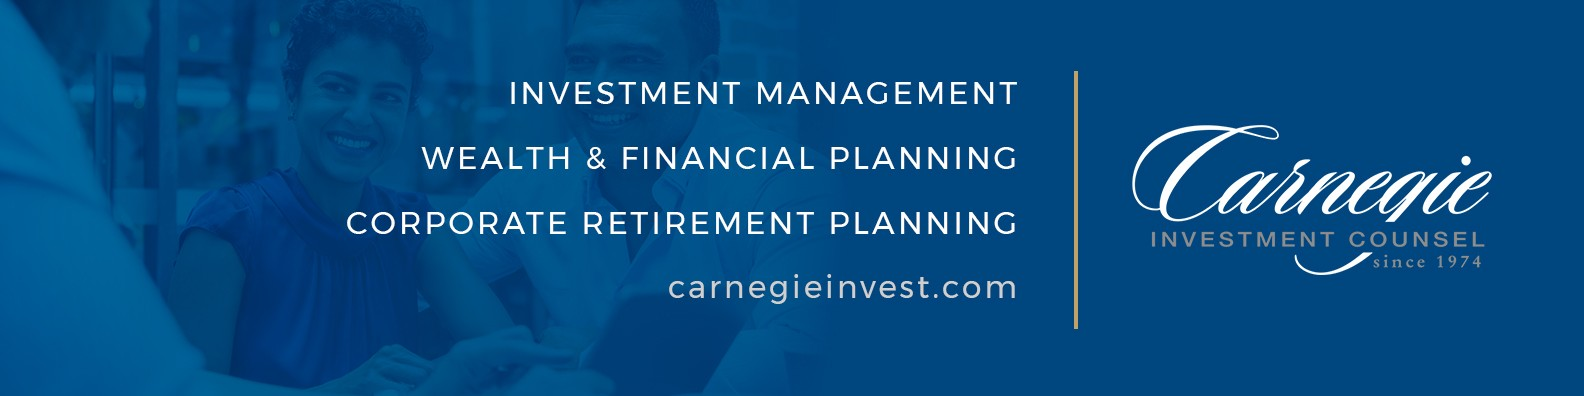 carnegie investment bank linkedin sign